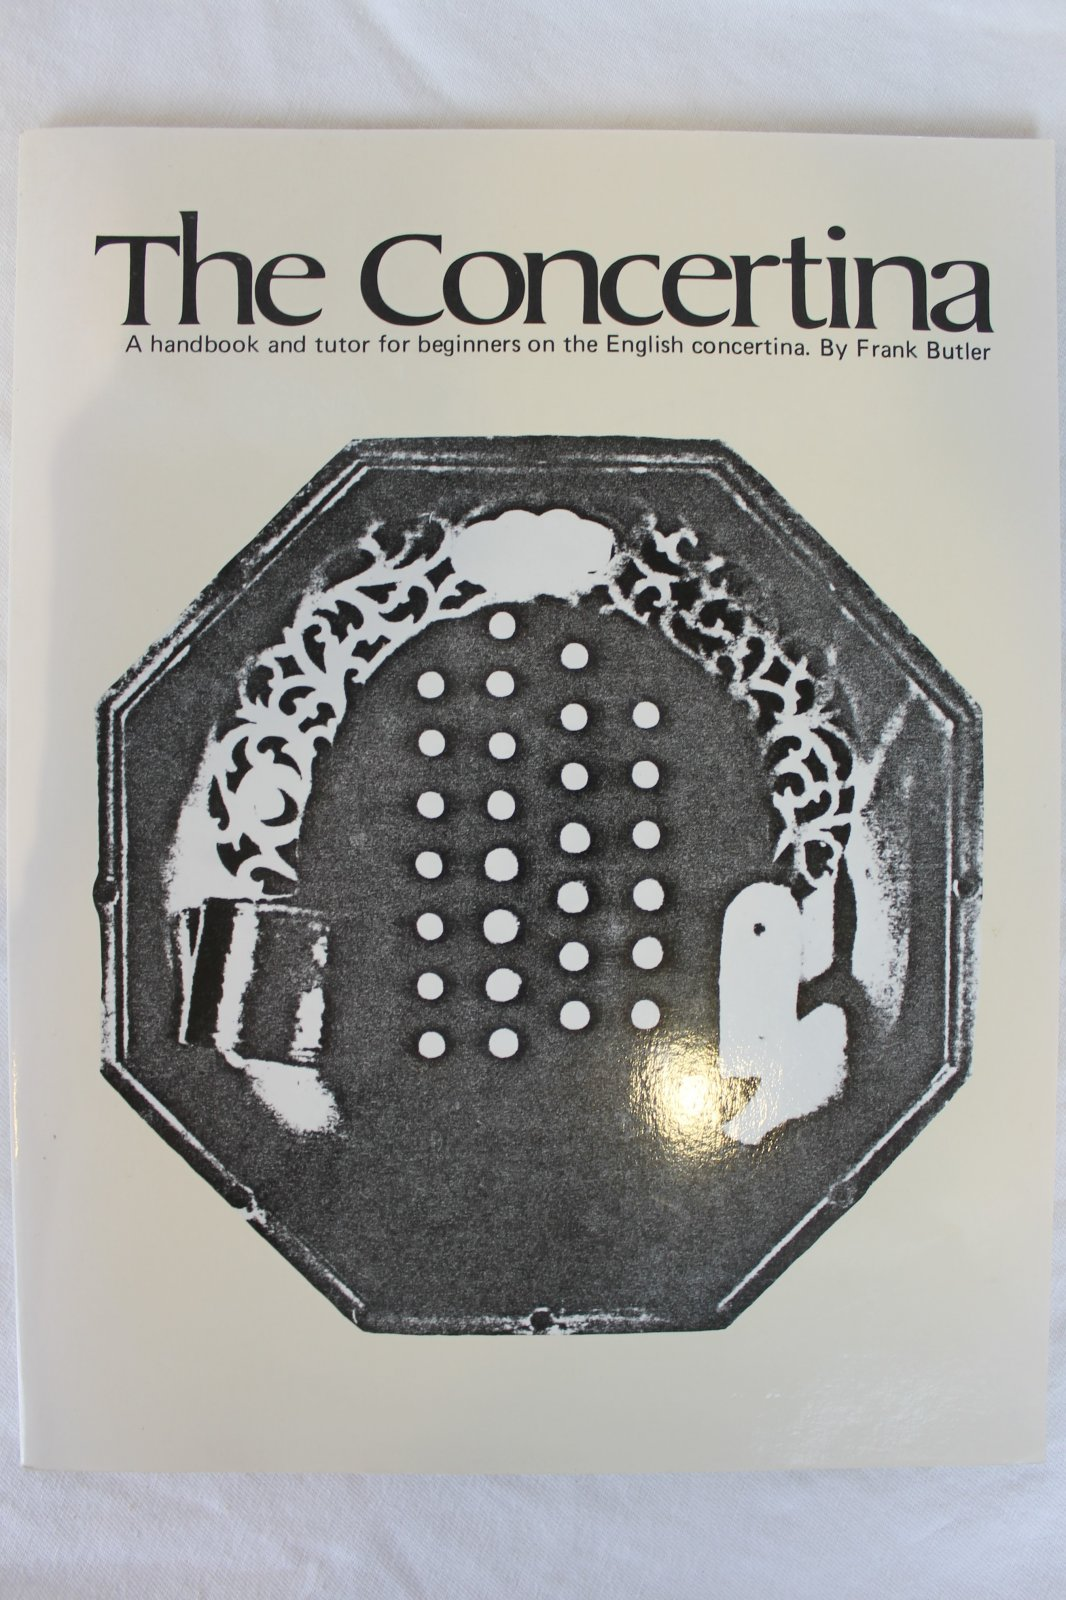 Used English Concertina Method Book - The Concertina by Frank Butler